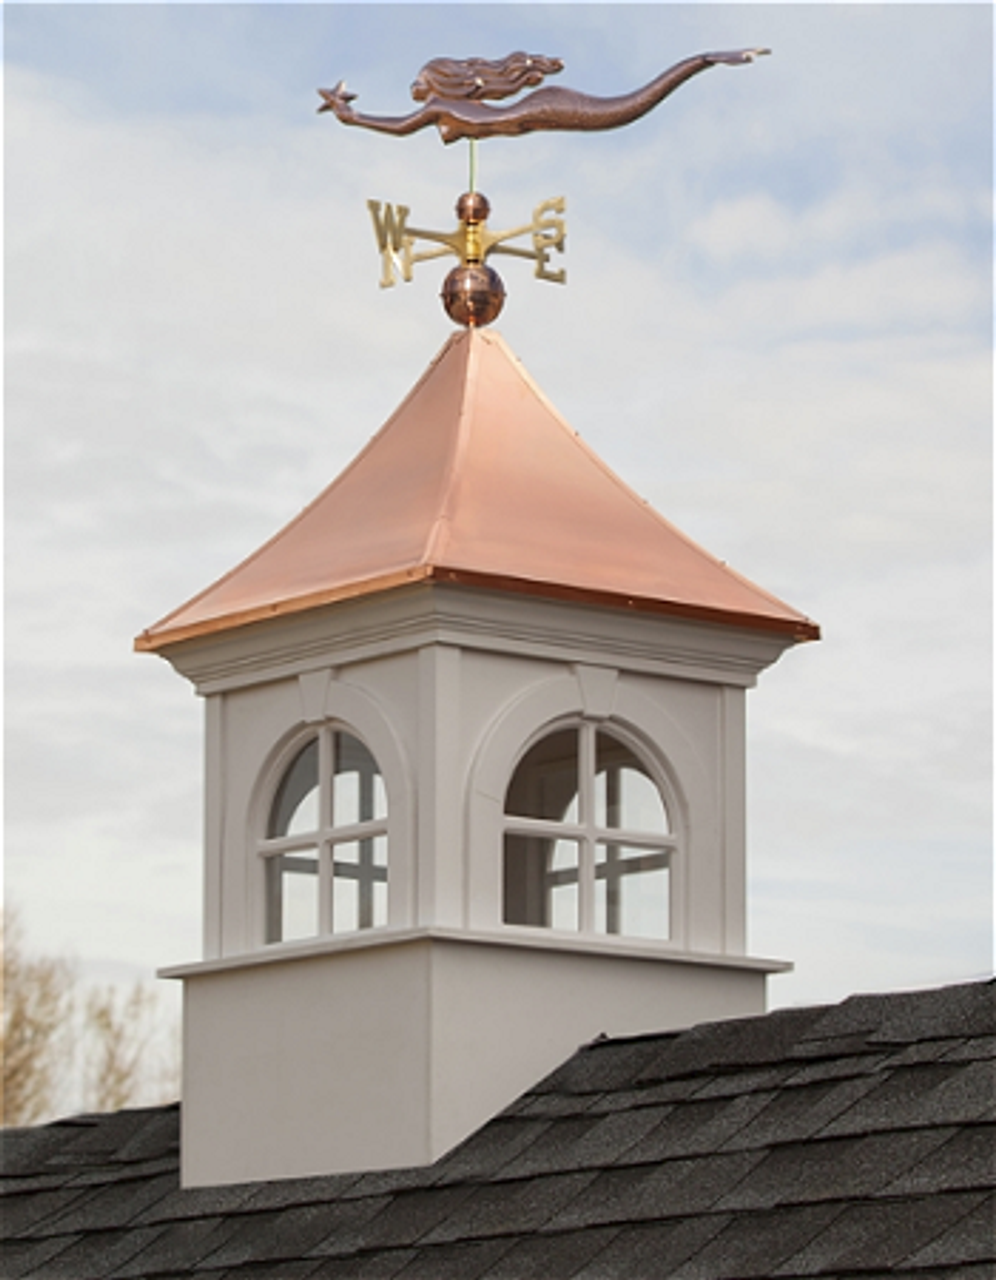 Good Directions Smithsonian Fairfax Vinyl Cupola 26in. square x 43in. High